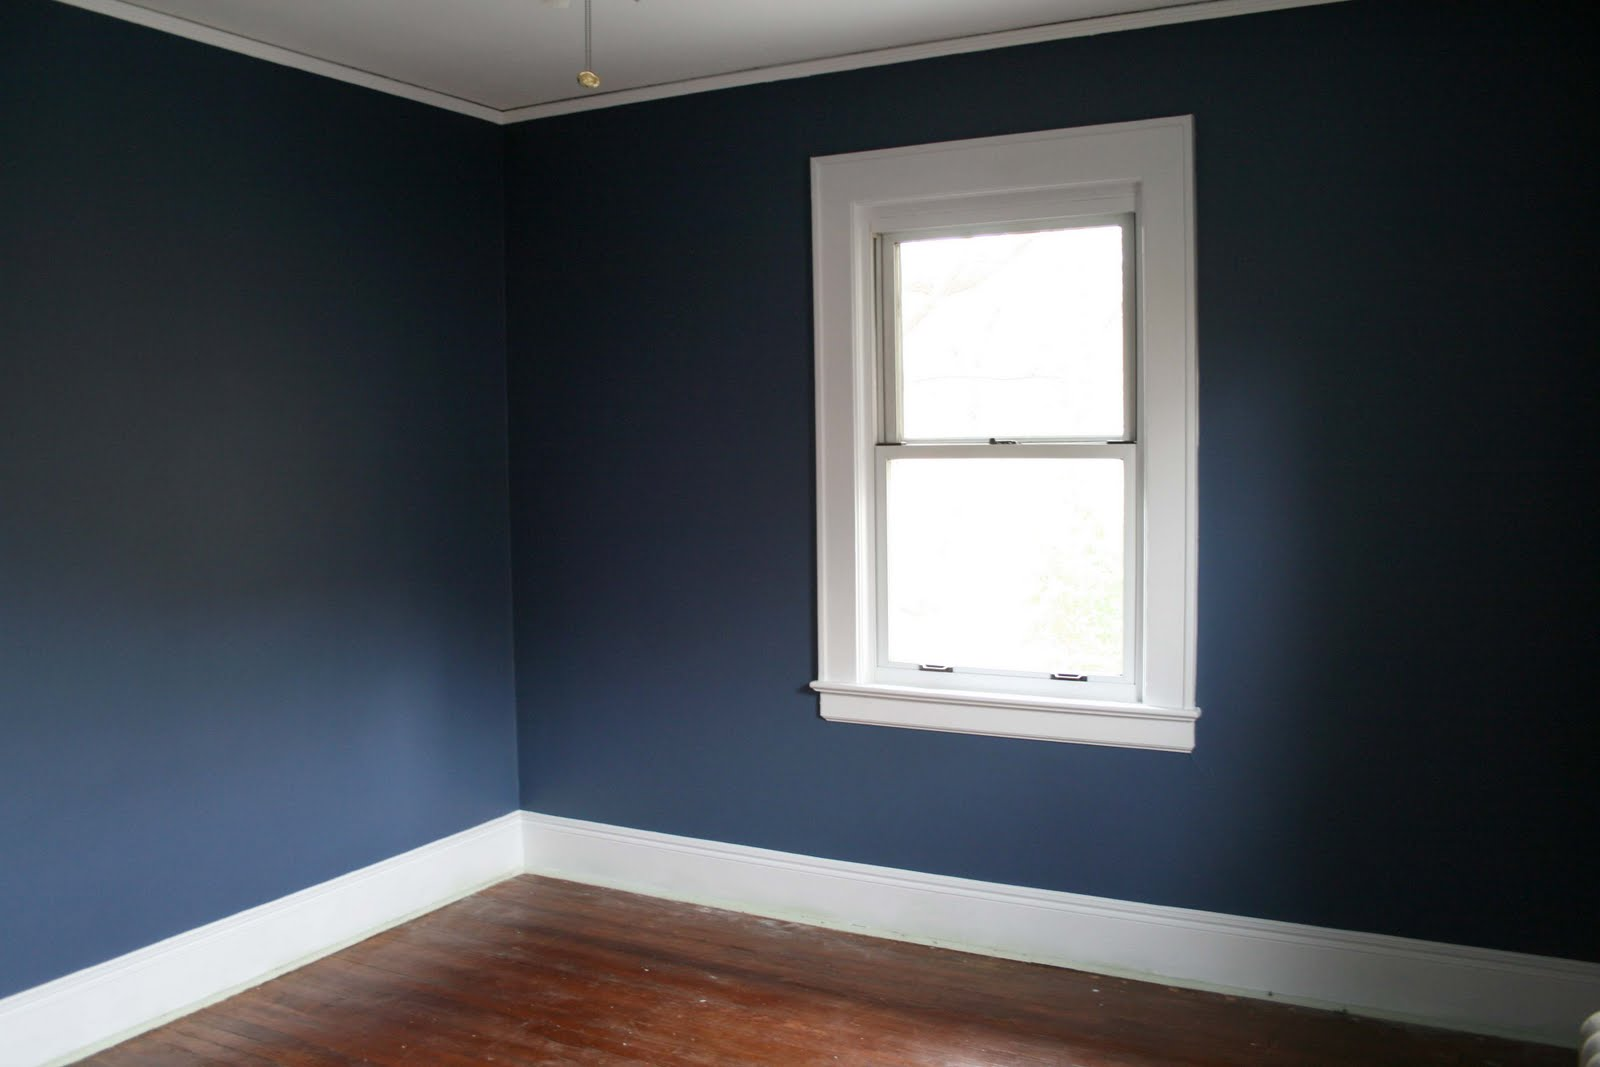 It 39 s a good house in the navy - Matte finish paint for walls ...